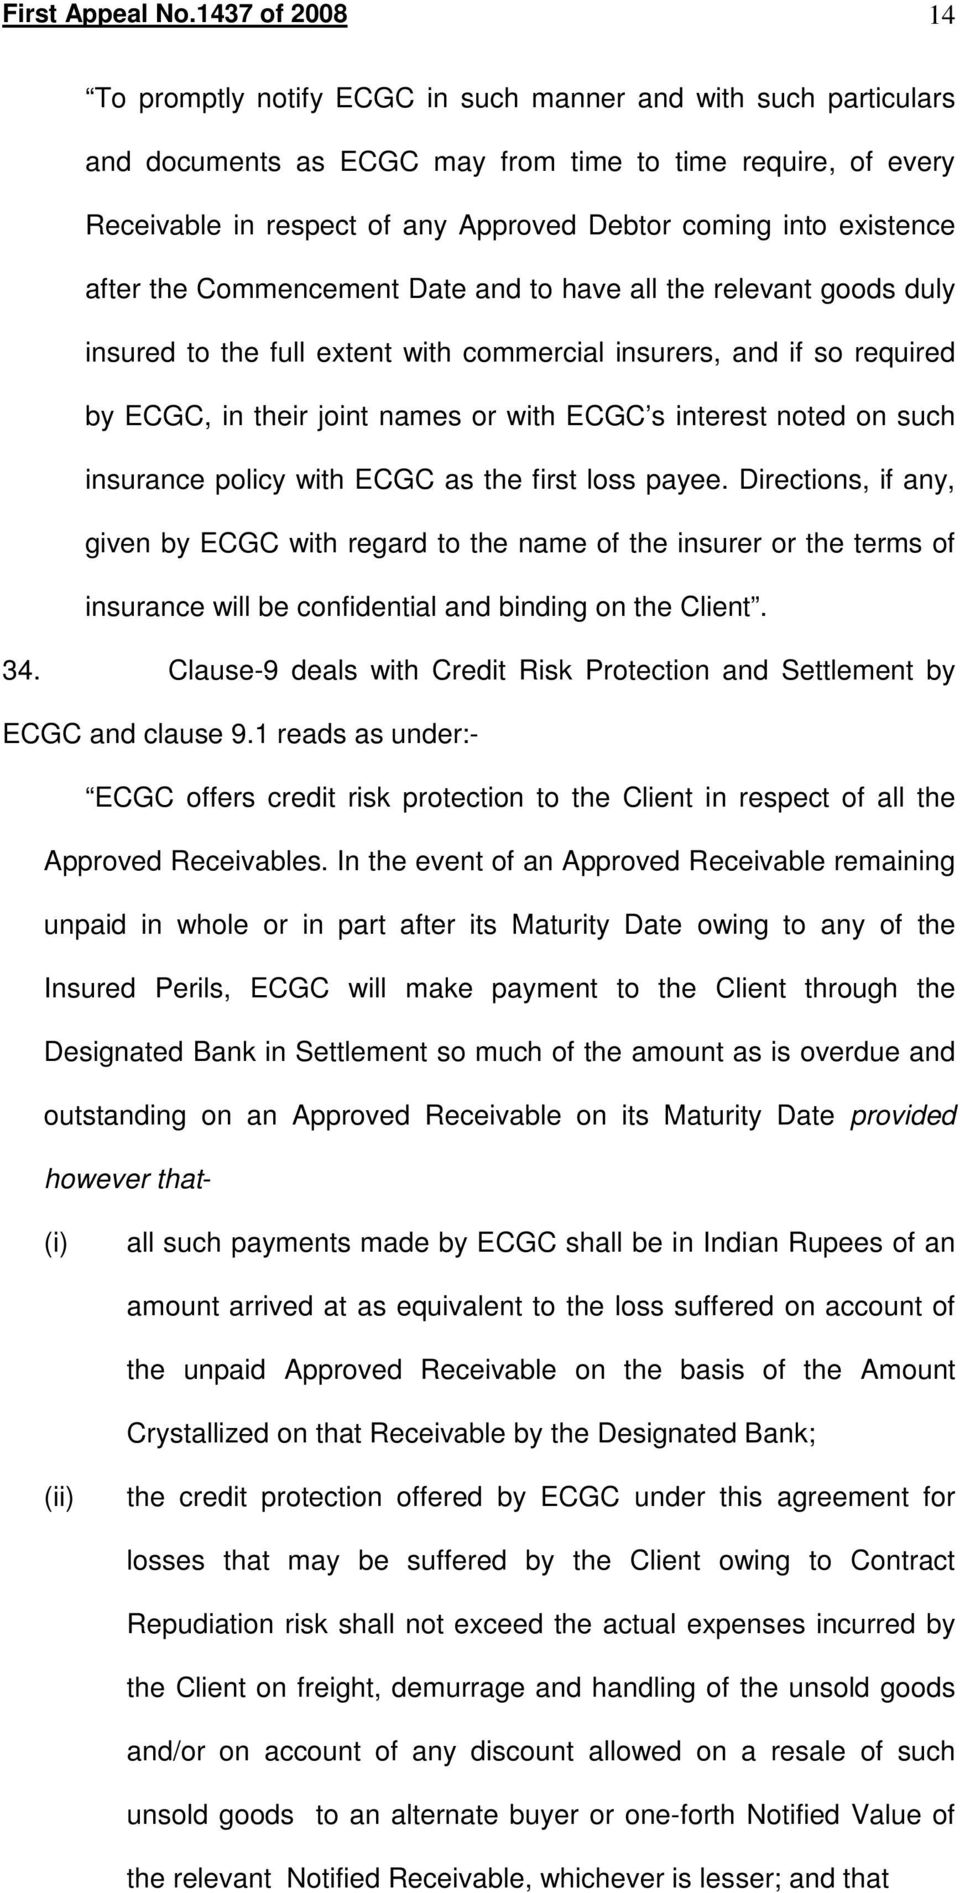 existence after the Commencement Date and to have all the relevant goods duly insured to the full extent with commercial insurers, and if so required by ECGC, in their joint names or with ECGC s